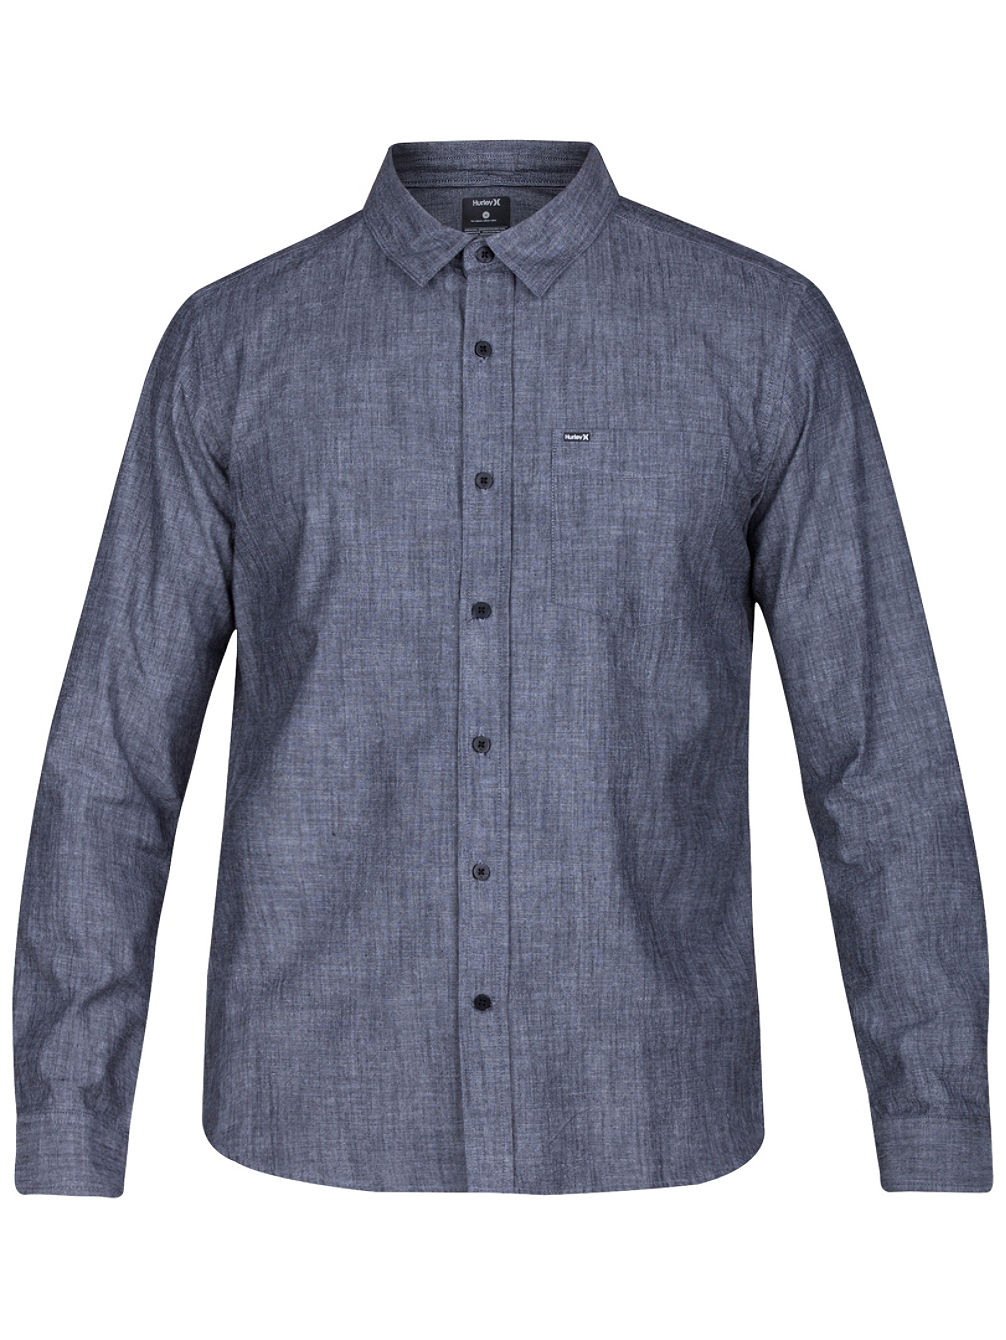 One & Only 3.0 Camisa